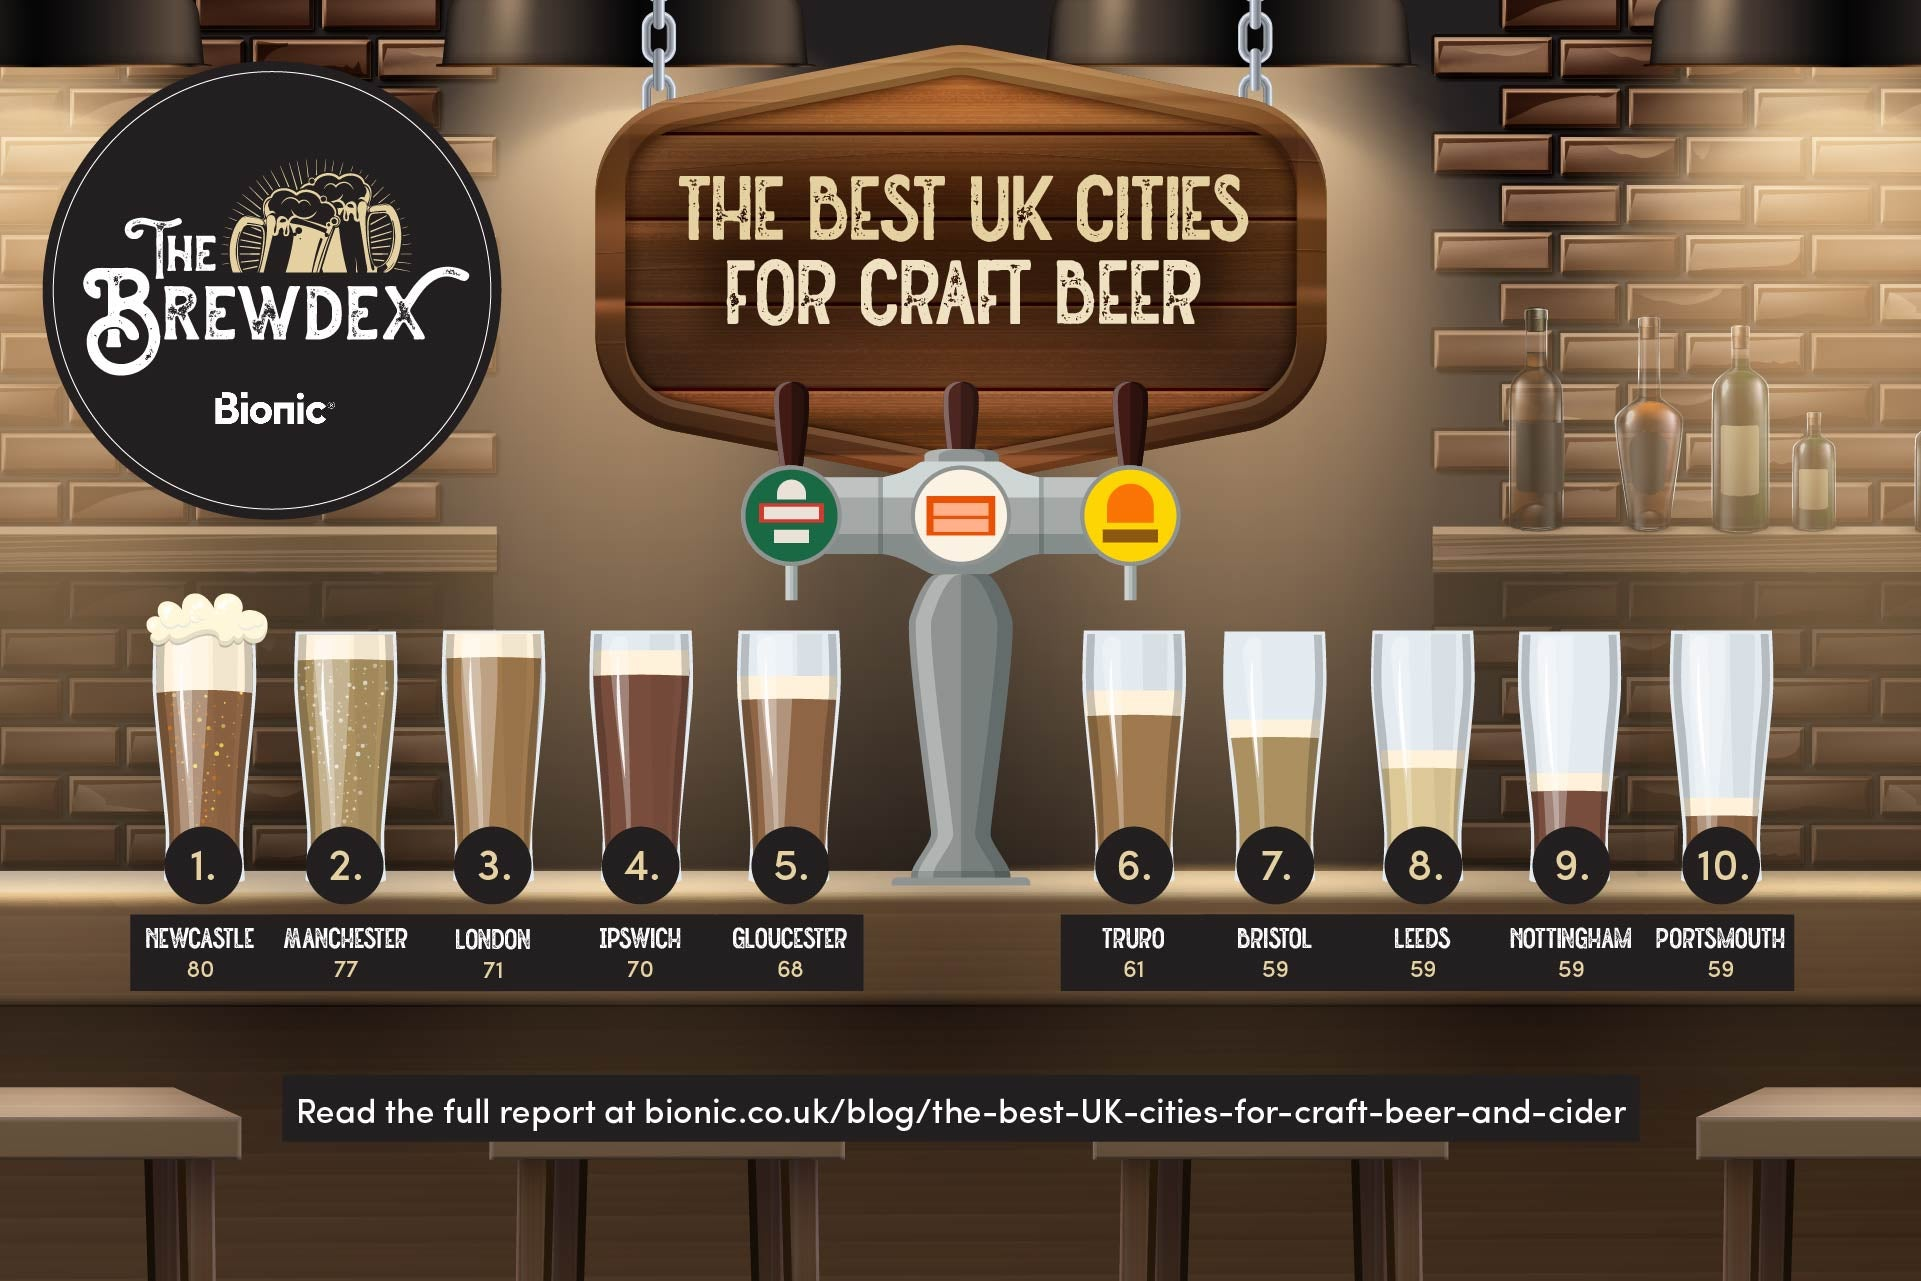 A bar top with ten pints of beer, each representing the best UK cities for craft beer